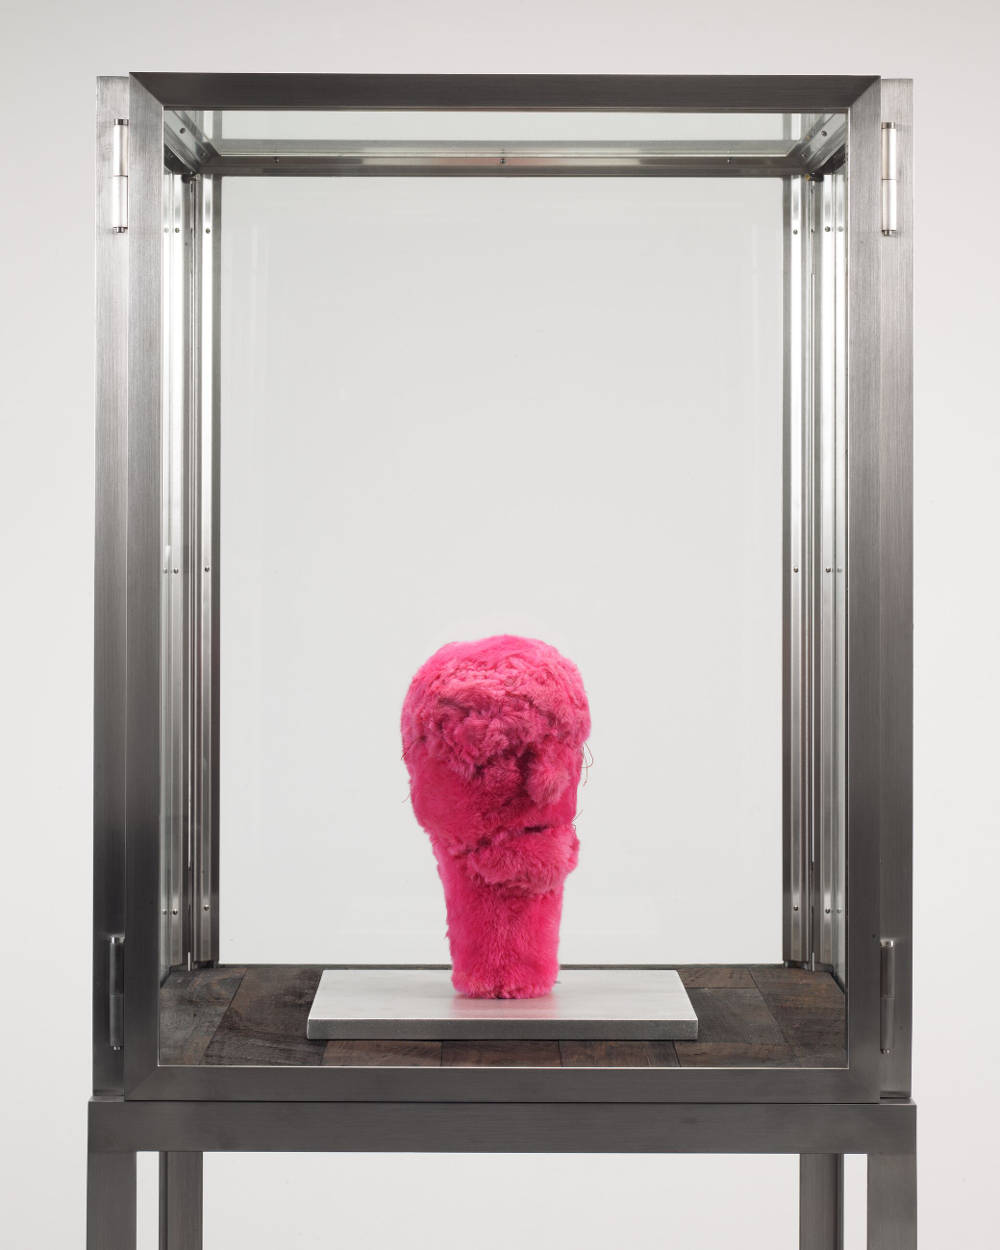 Louise Bourgeois, Untitled, 2001. Pink fabric and aluminum 31.1 x 29.8 x 29.8 cm / 12 1/4 x 11 3/4 x 11 3/4 in. Stainless steel, glass and wood vitrine: 188 x 60.9 x 60.9 cm / 70 x 24 x 24 in. Photo: Christopher Burke © The Easton Foundation/VAGA at ARS, NY. Courtesy The Easton Foundation and Hauser & Wirth